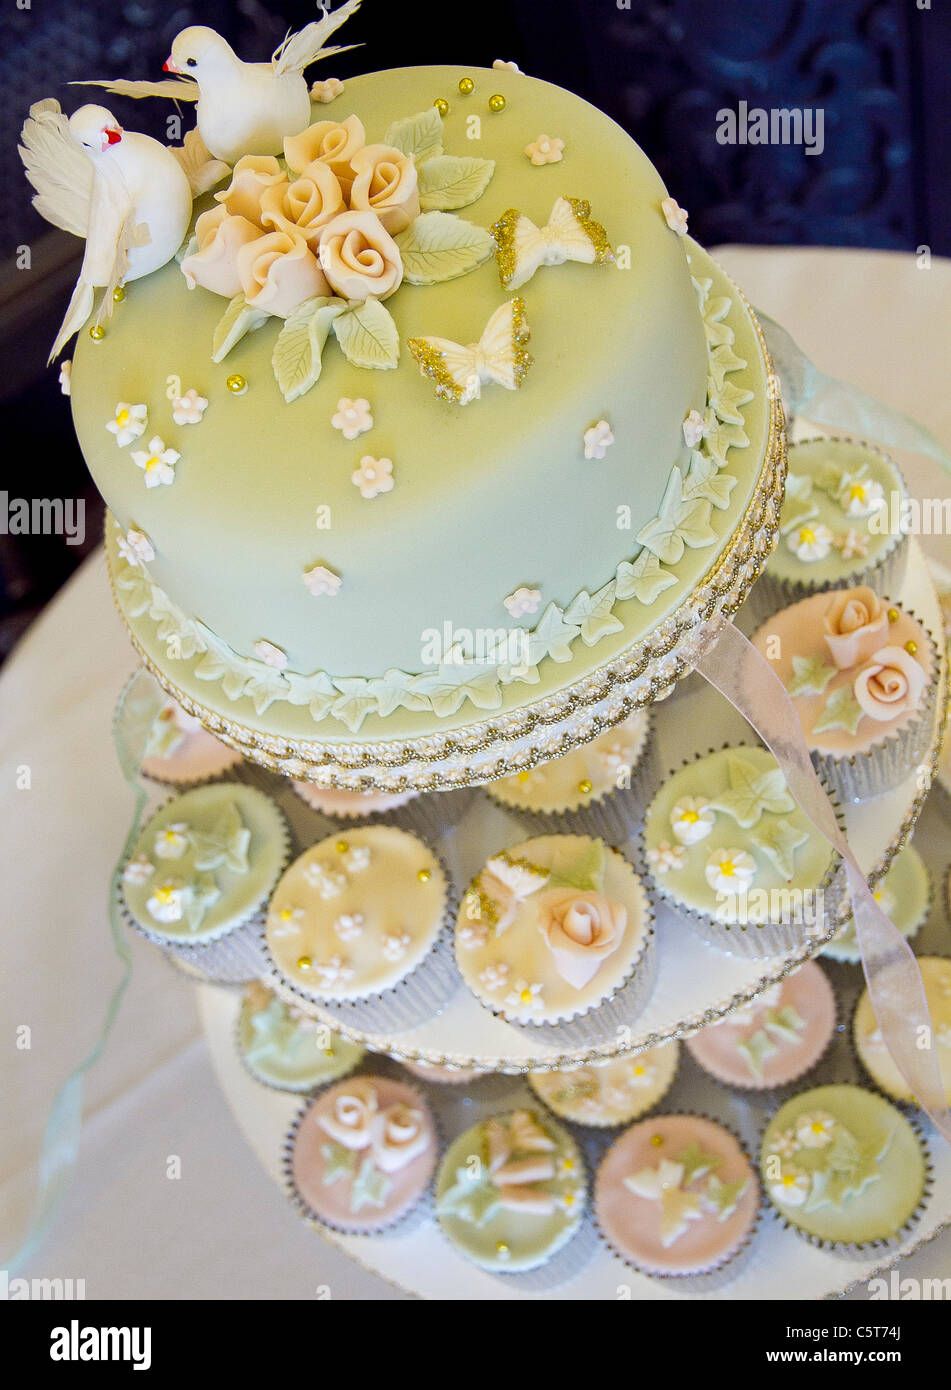 Wedding cake with tiered cup cakes Stock Photo: 38026482 - Alamy